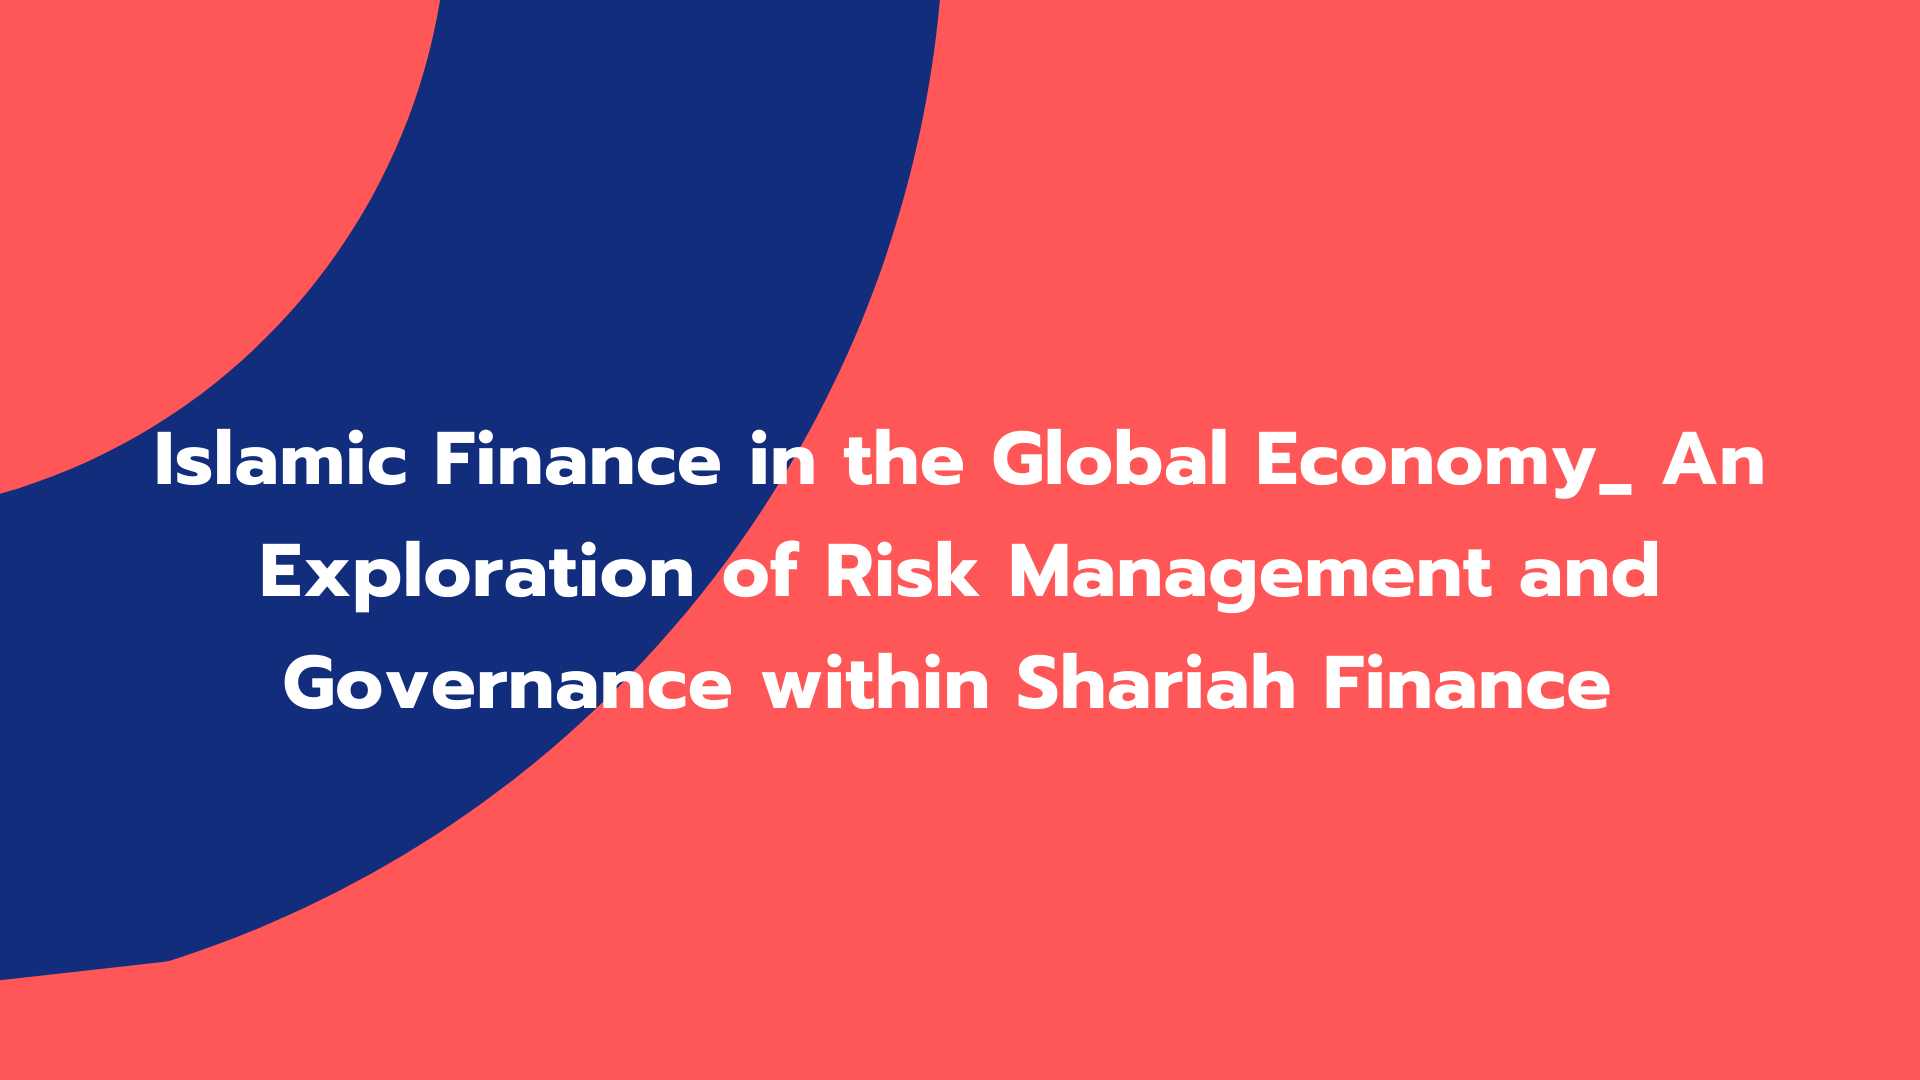 Islamic Finance in the Global Economy_ An Exploration of Risk Management and Governance within Shariah Finance